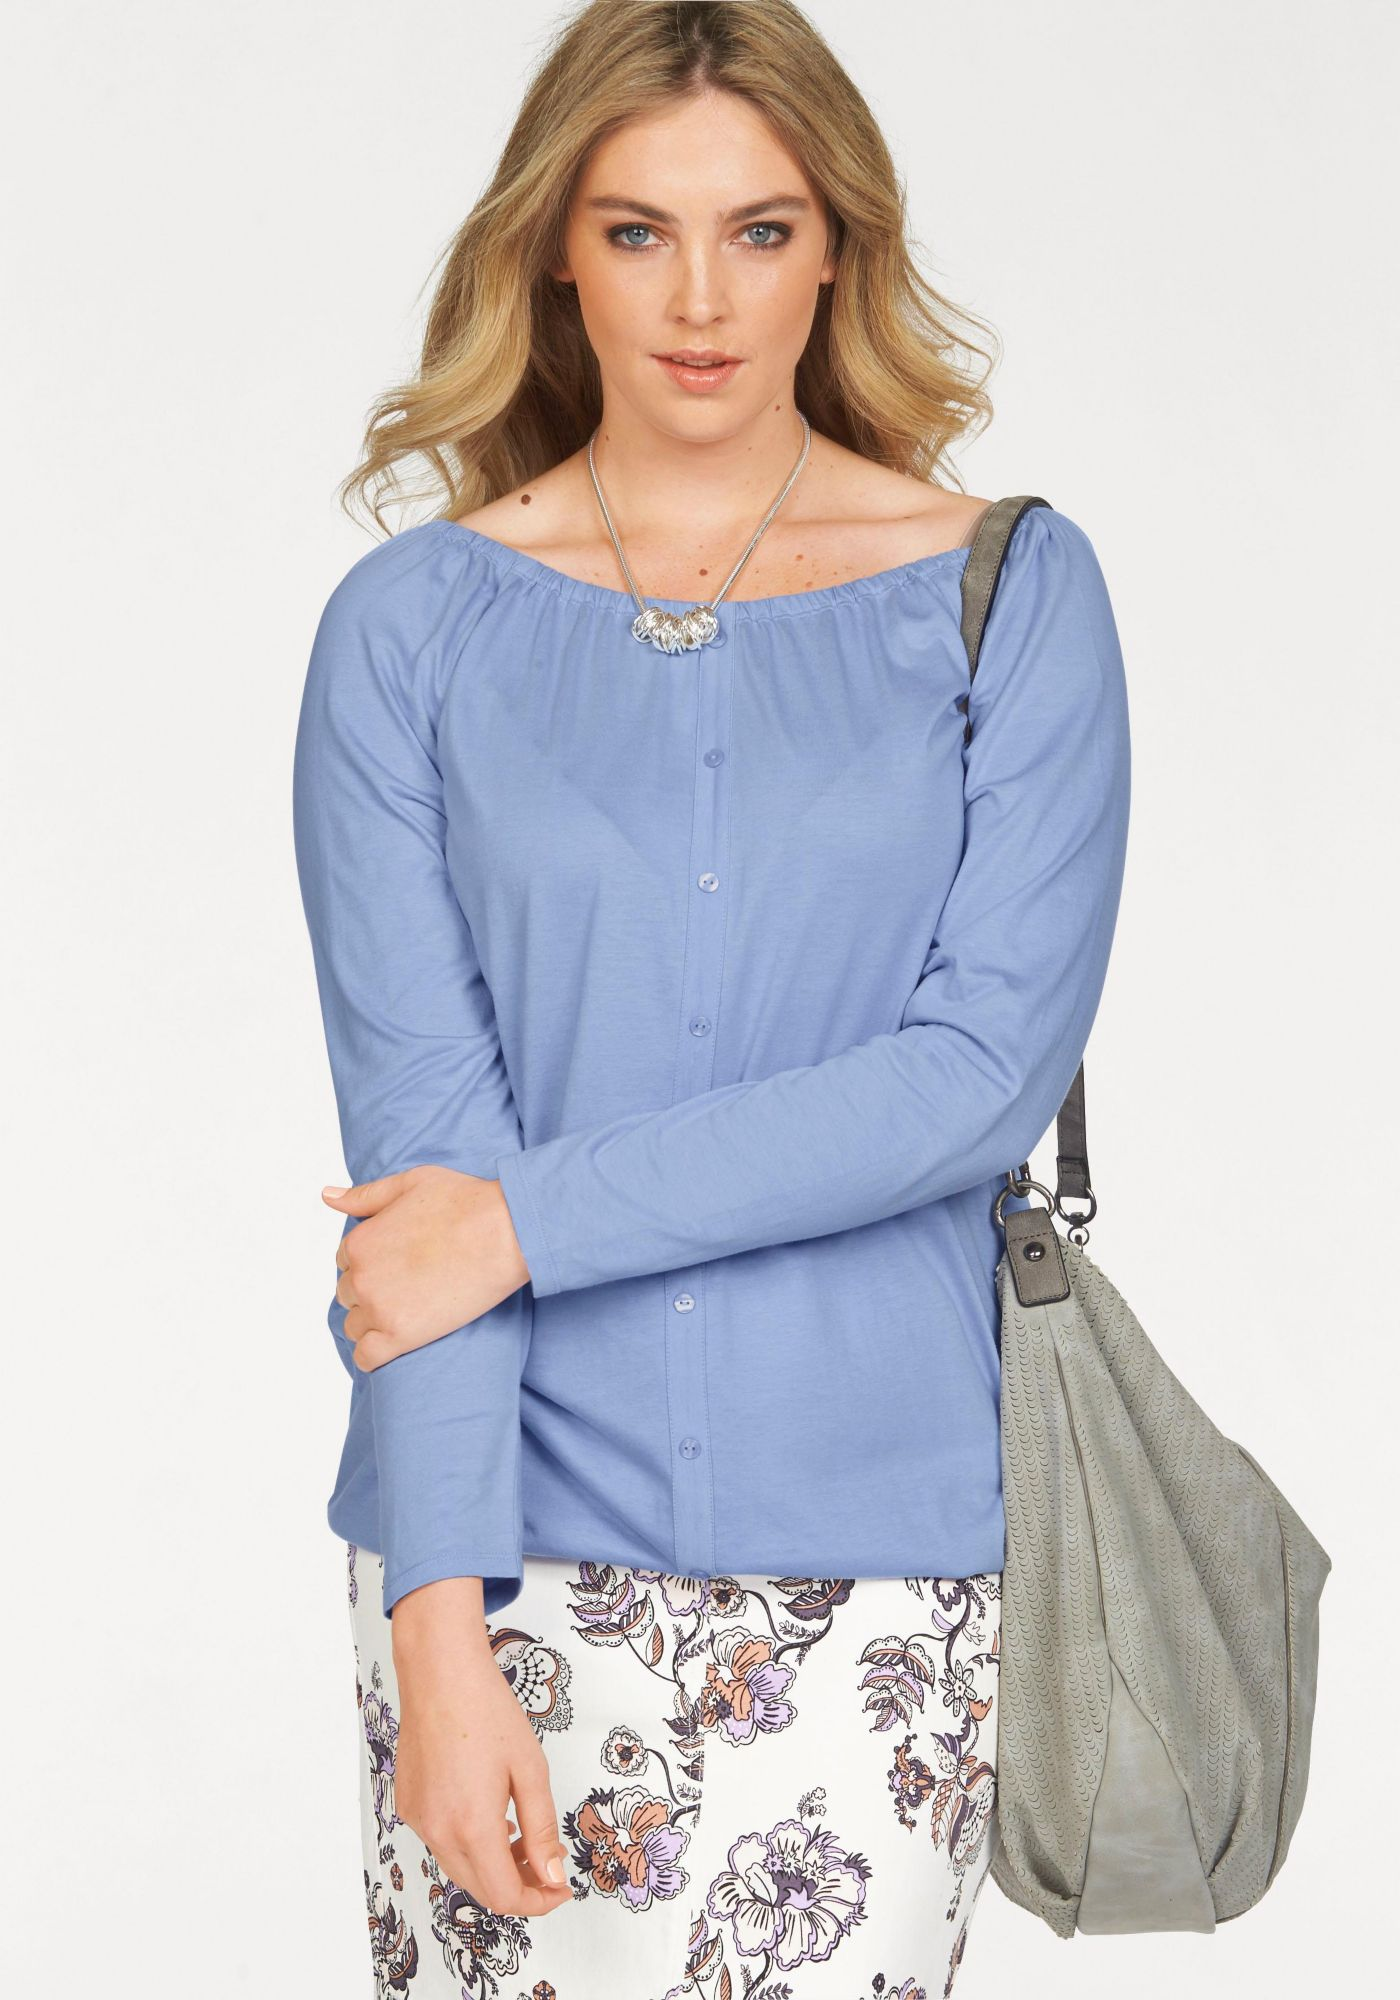 BOYSENS Boysen's Carmenshirt »Off-Shoulder«